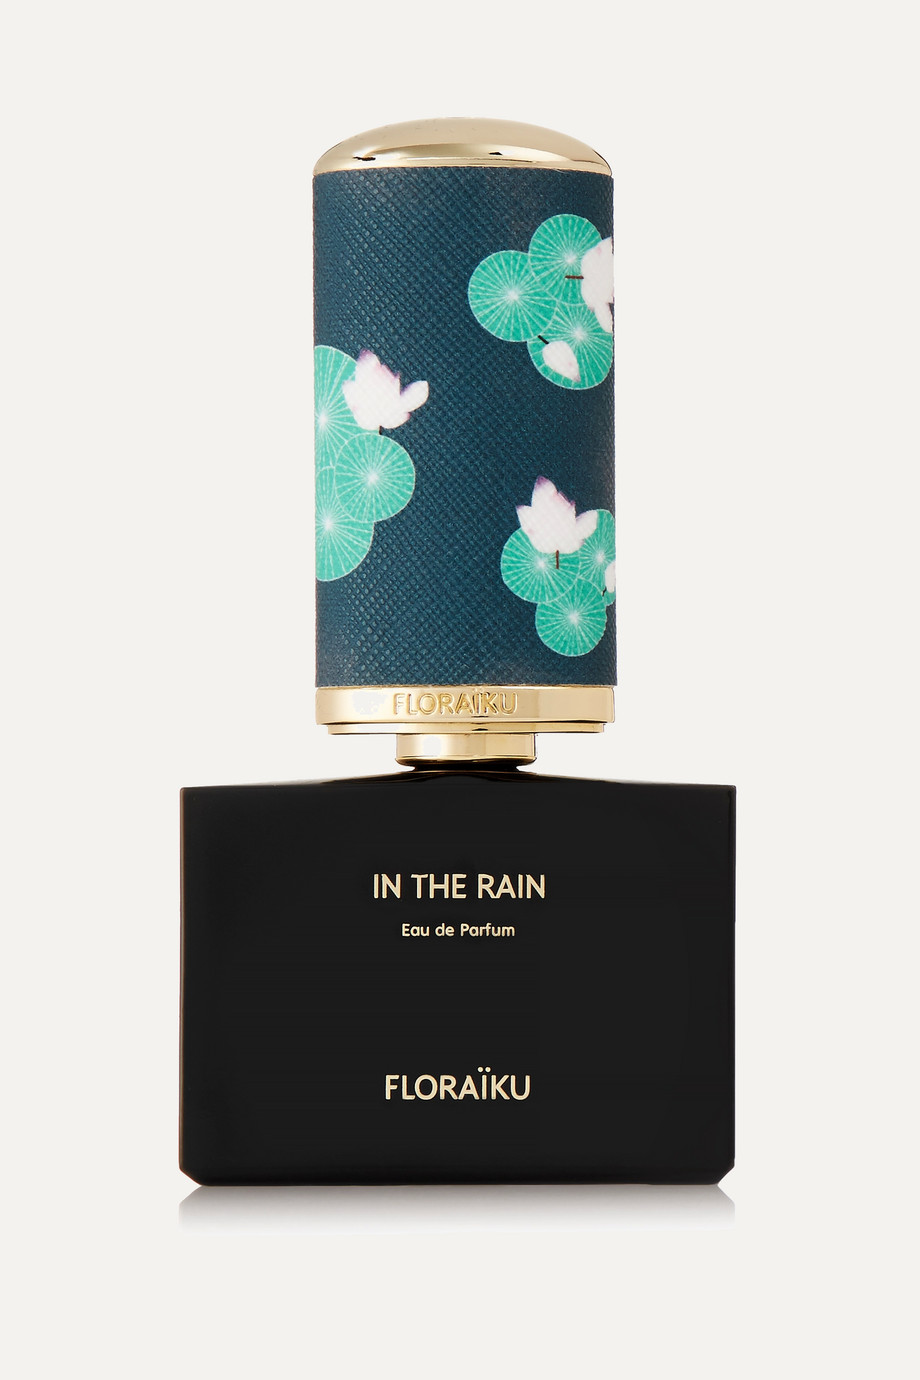 Floraiku In the Rain Eau de Parfum, 50ml & 10ml